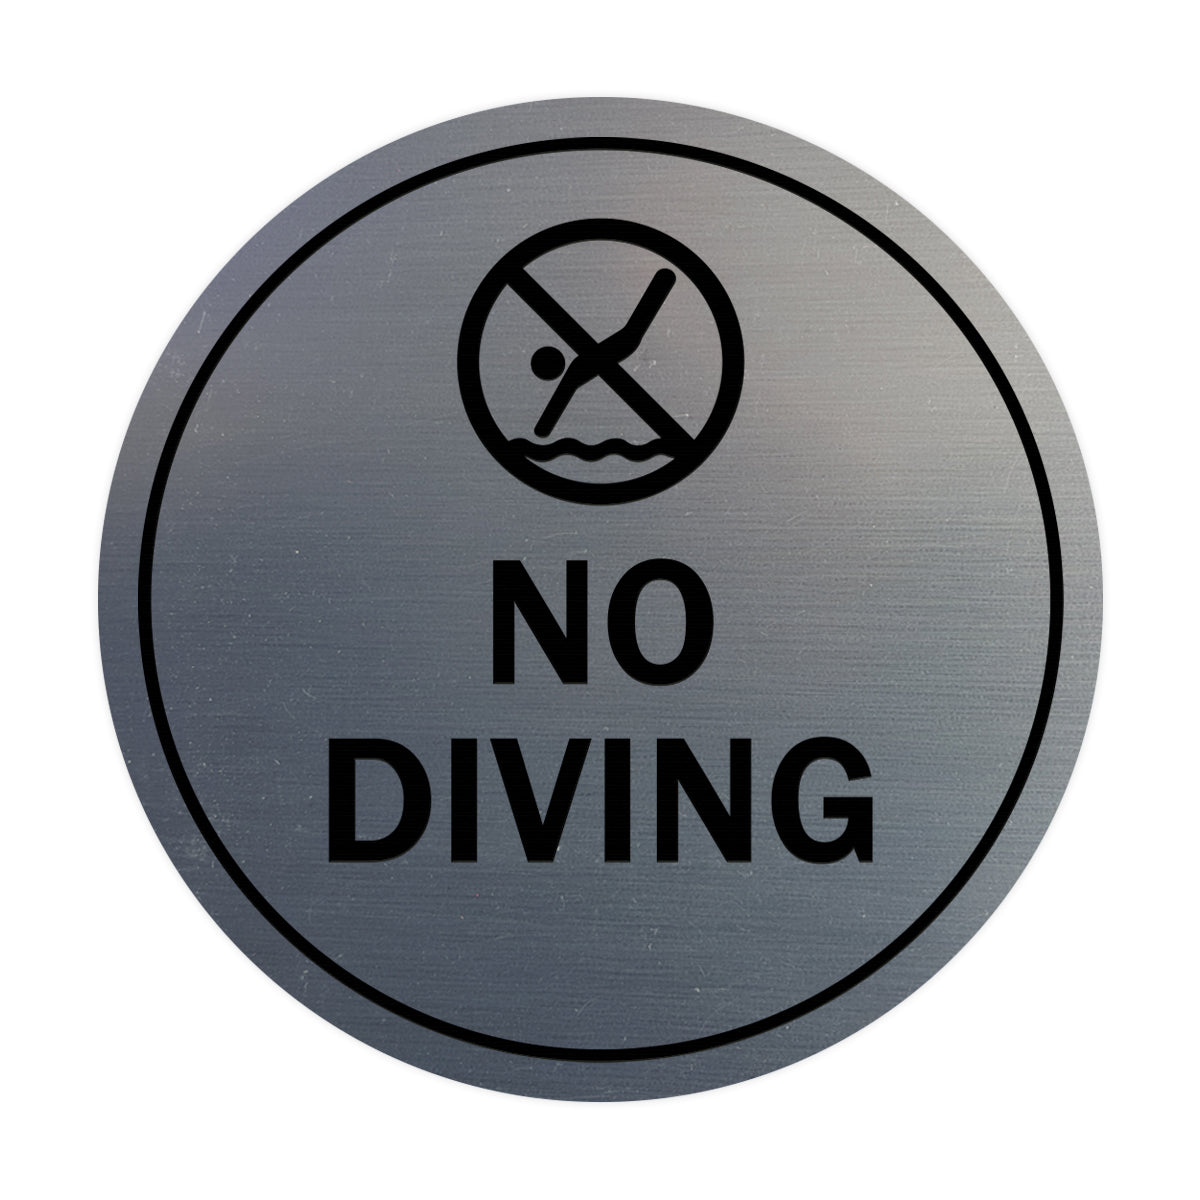 Signs ByLITA Circle No Diving Sign with Adhesive Tape, Mounts On Any Surface, Weather Resistant, Indoor/Outdoor Use